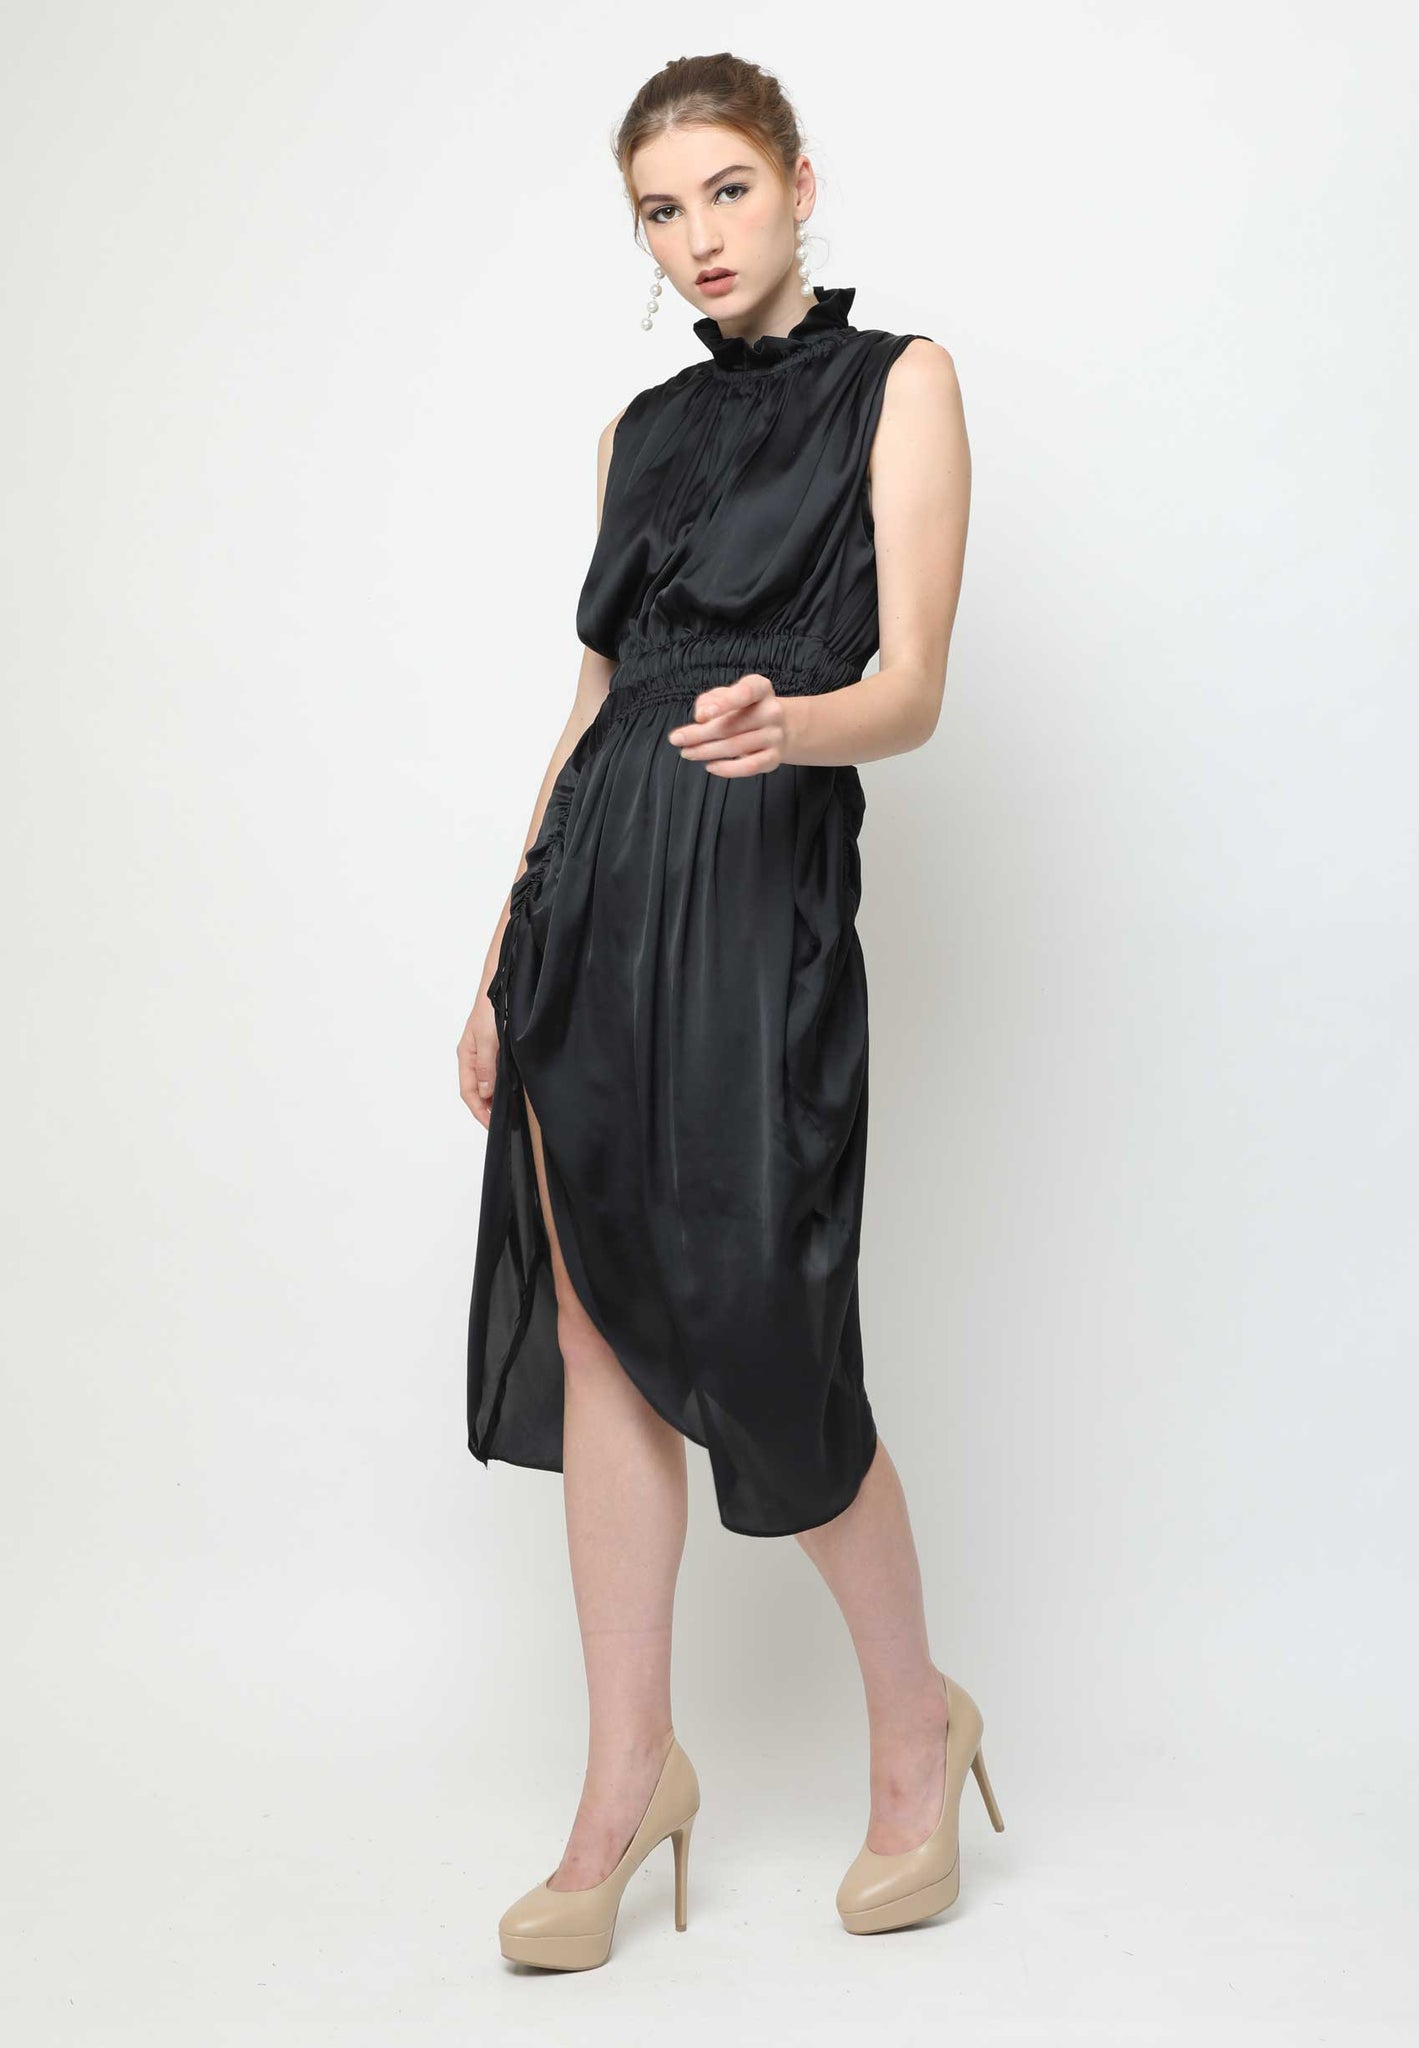 Ava. Arched Dress - Black